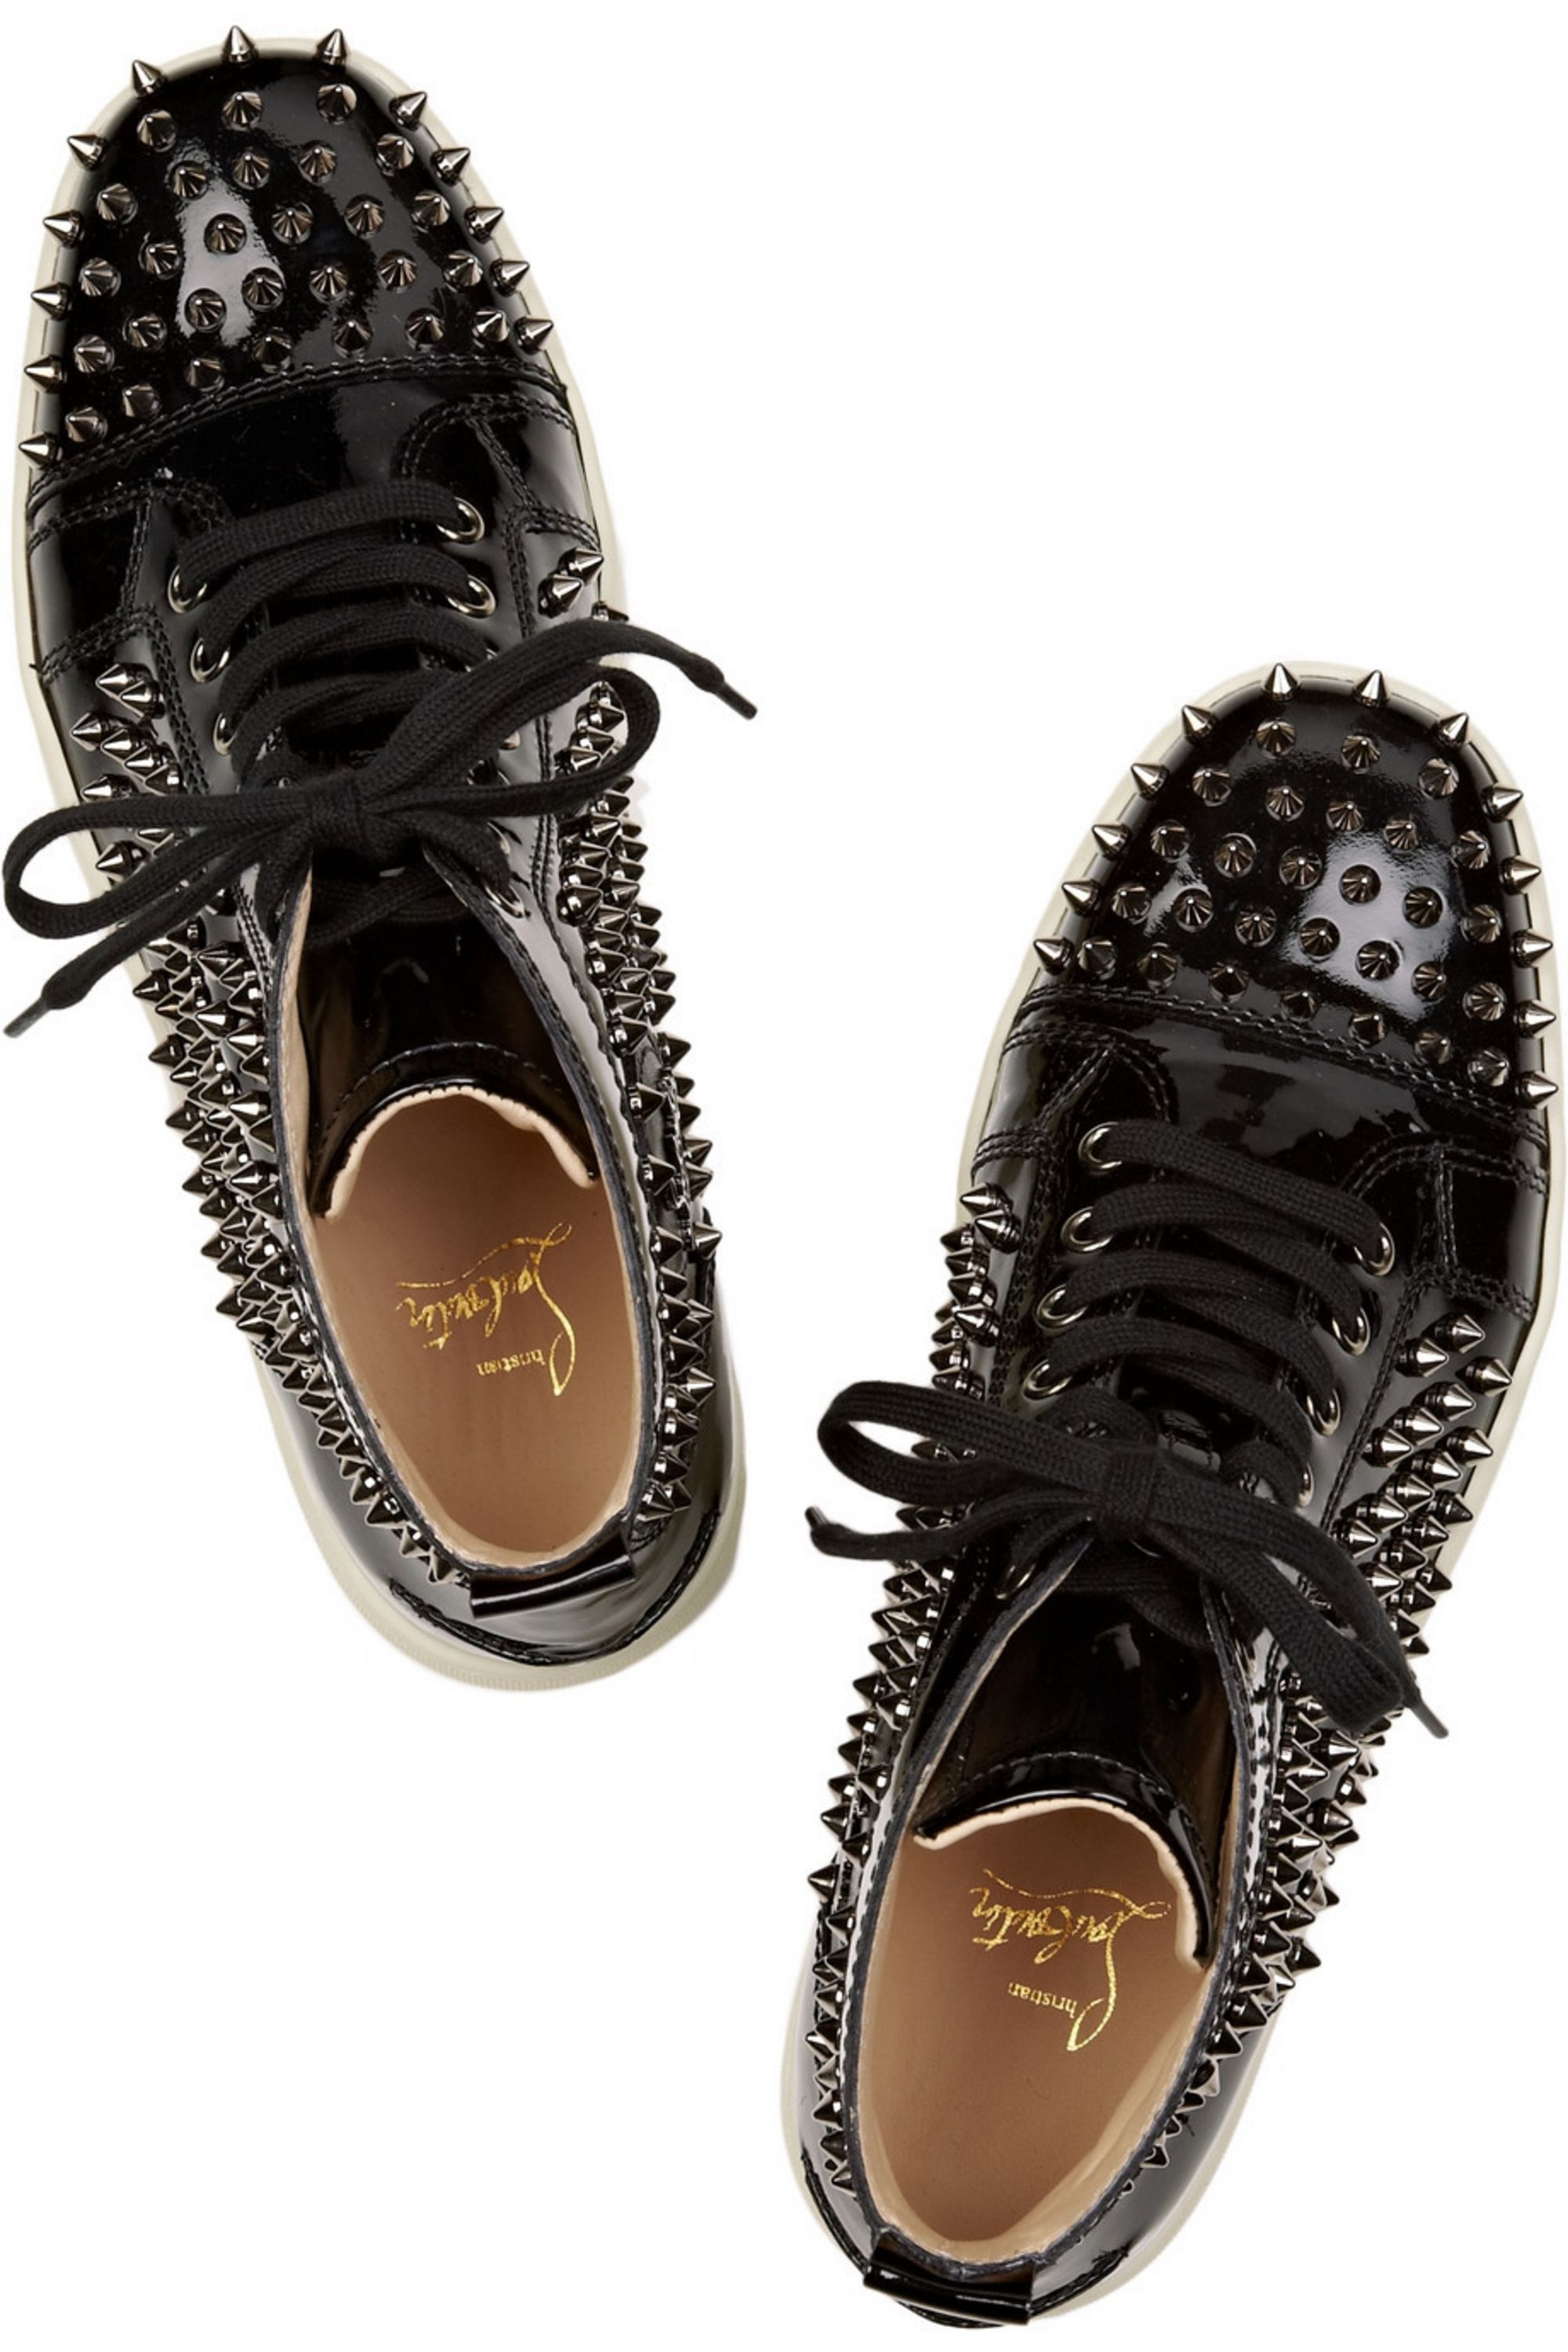 Christian Louboutin Louis studded patent-leather sneakers